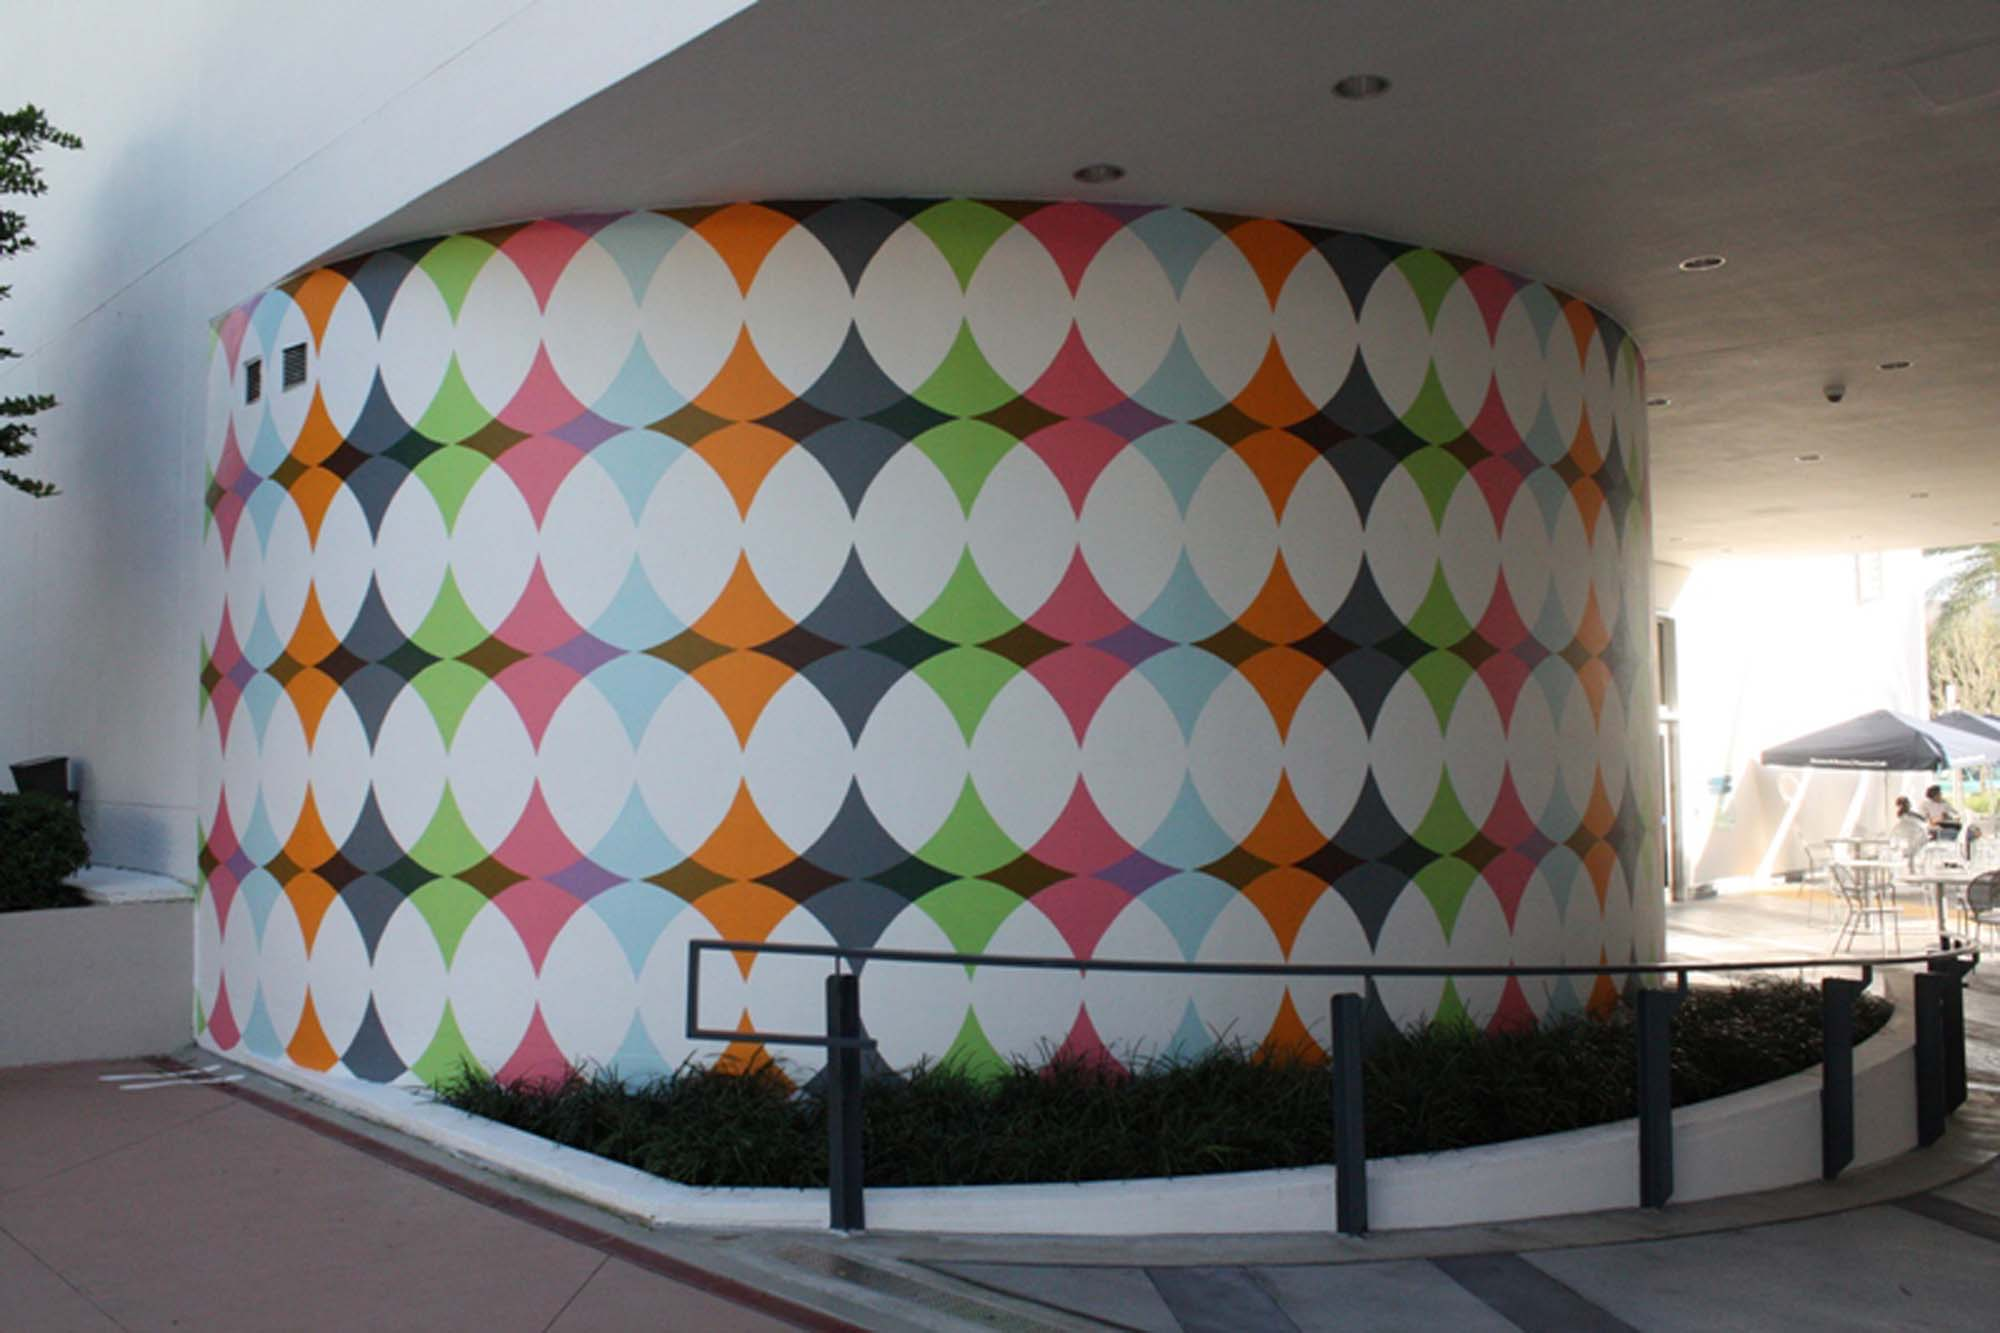 R & R Studios